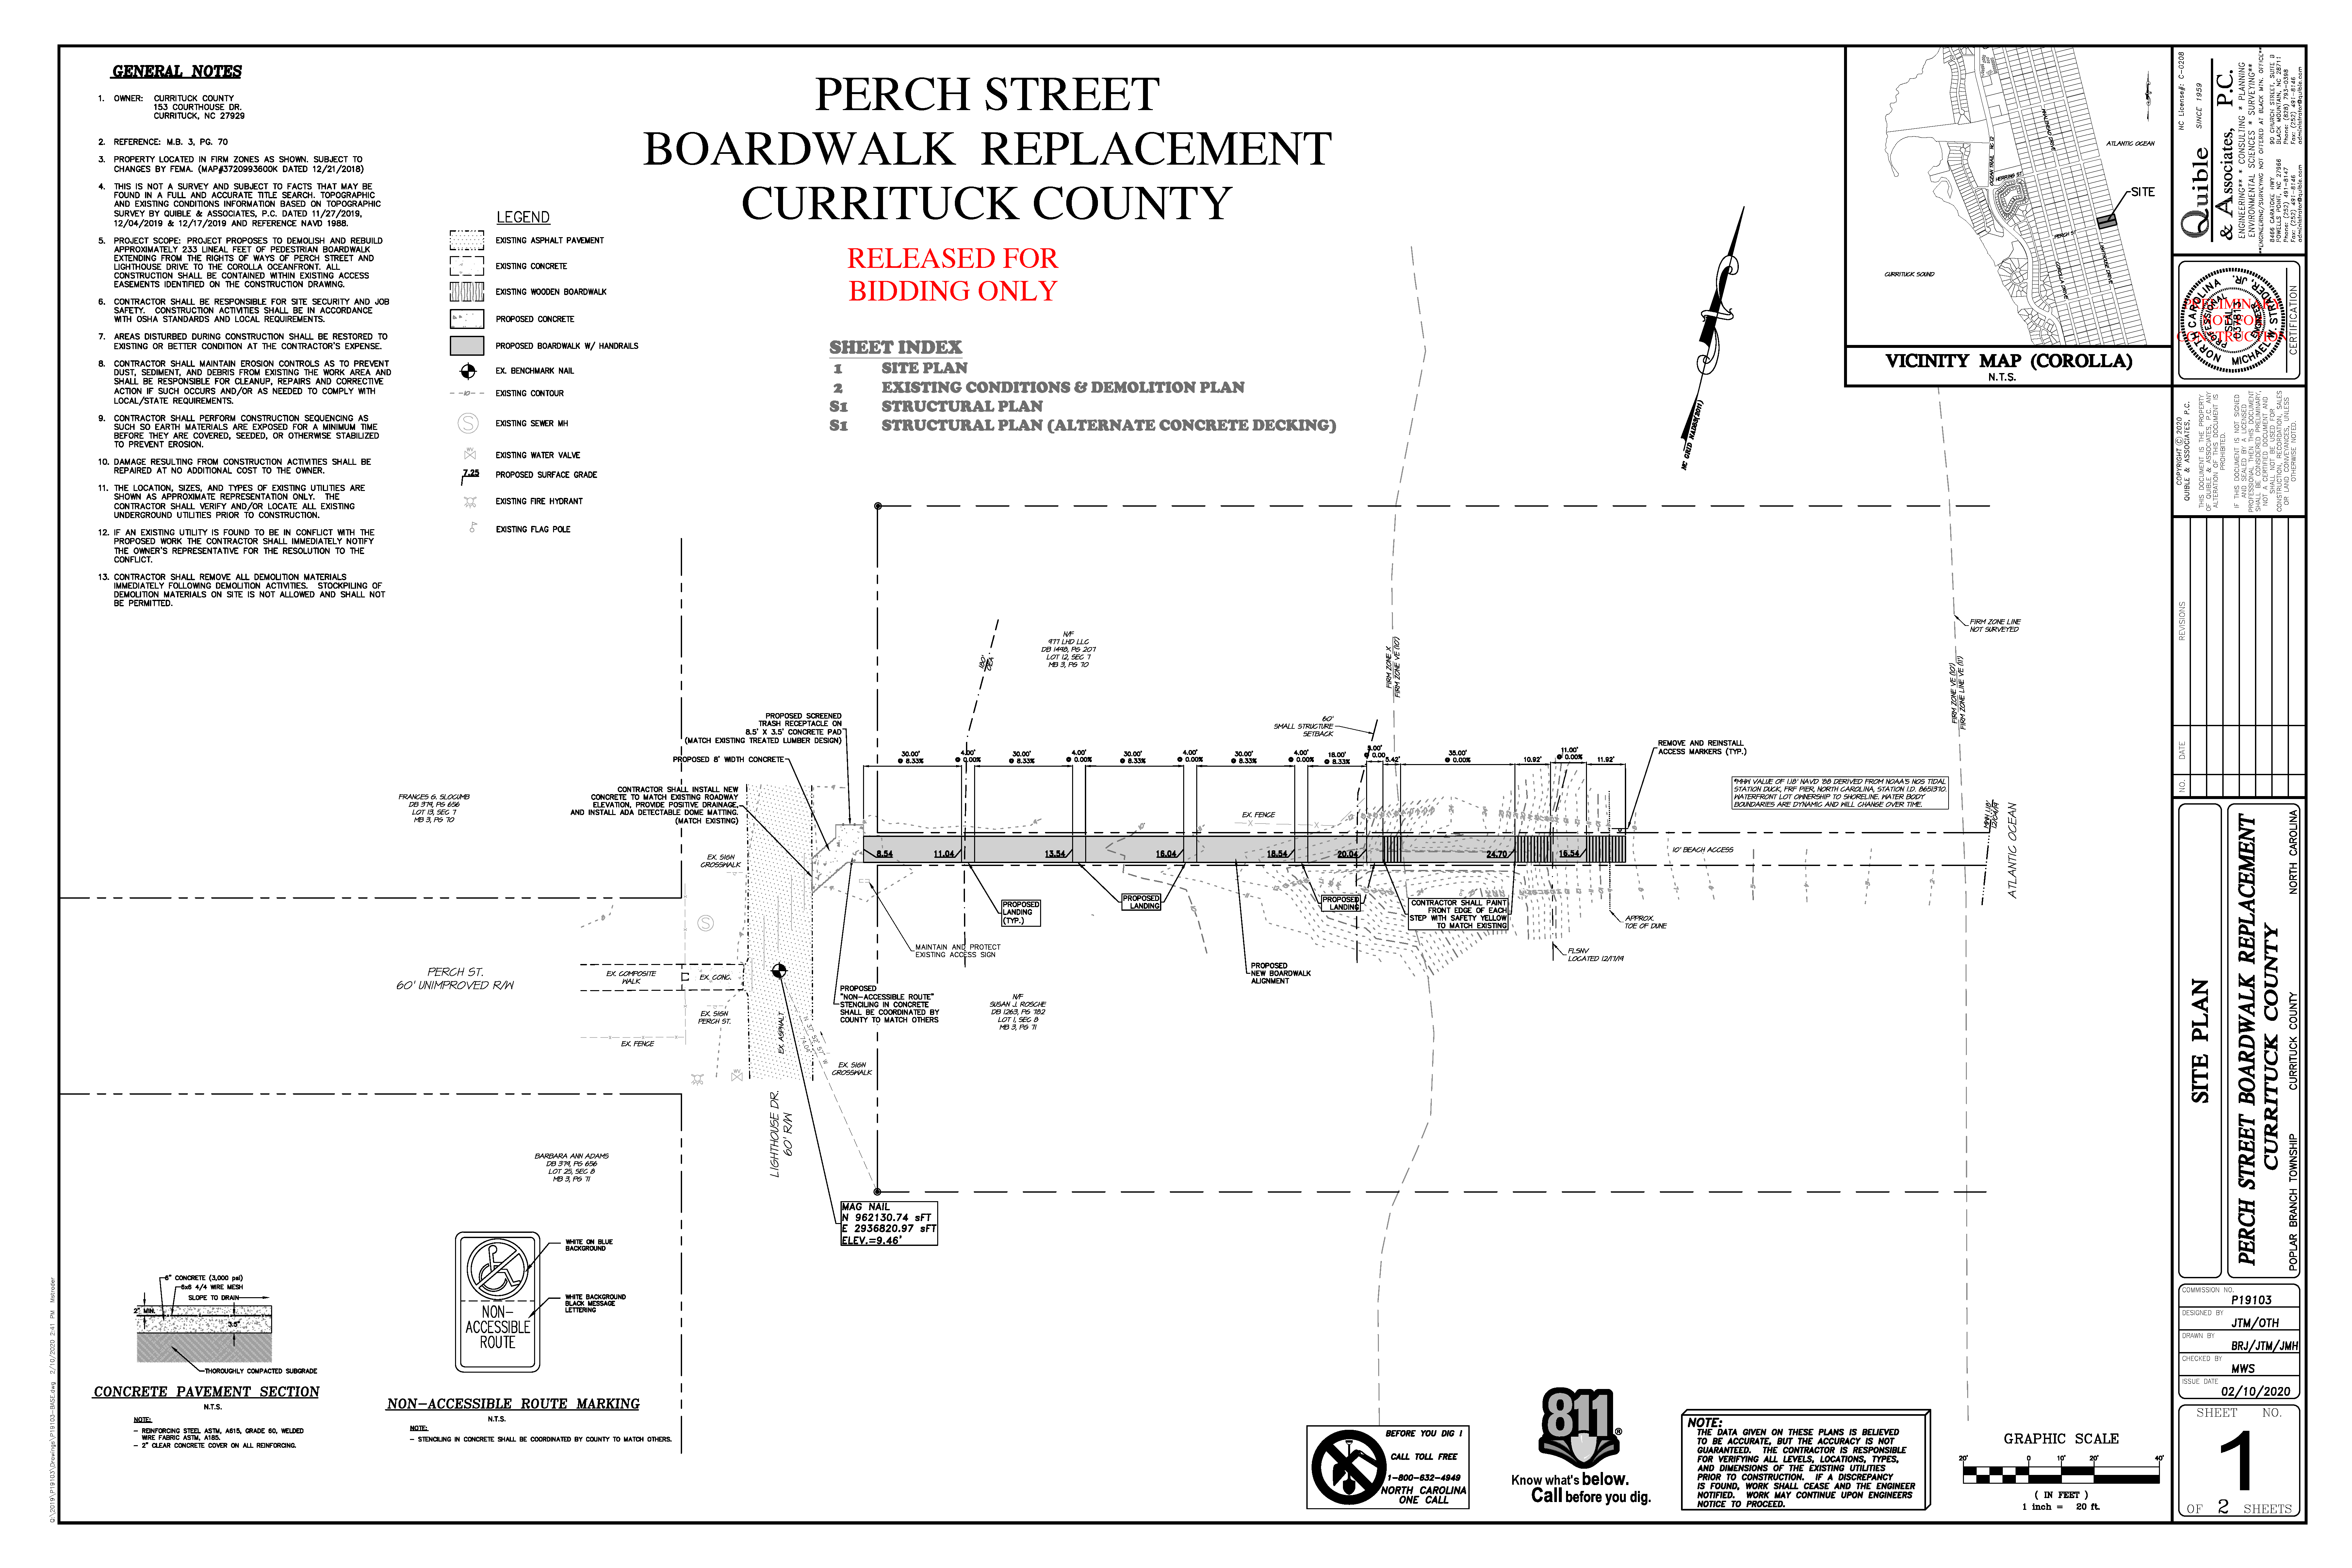 Perch Street Boardwalk Replacement Site Plan